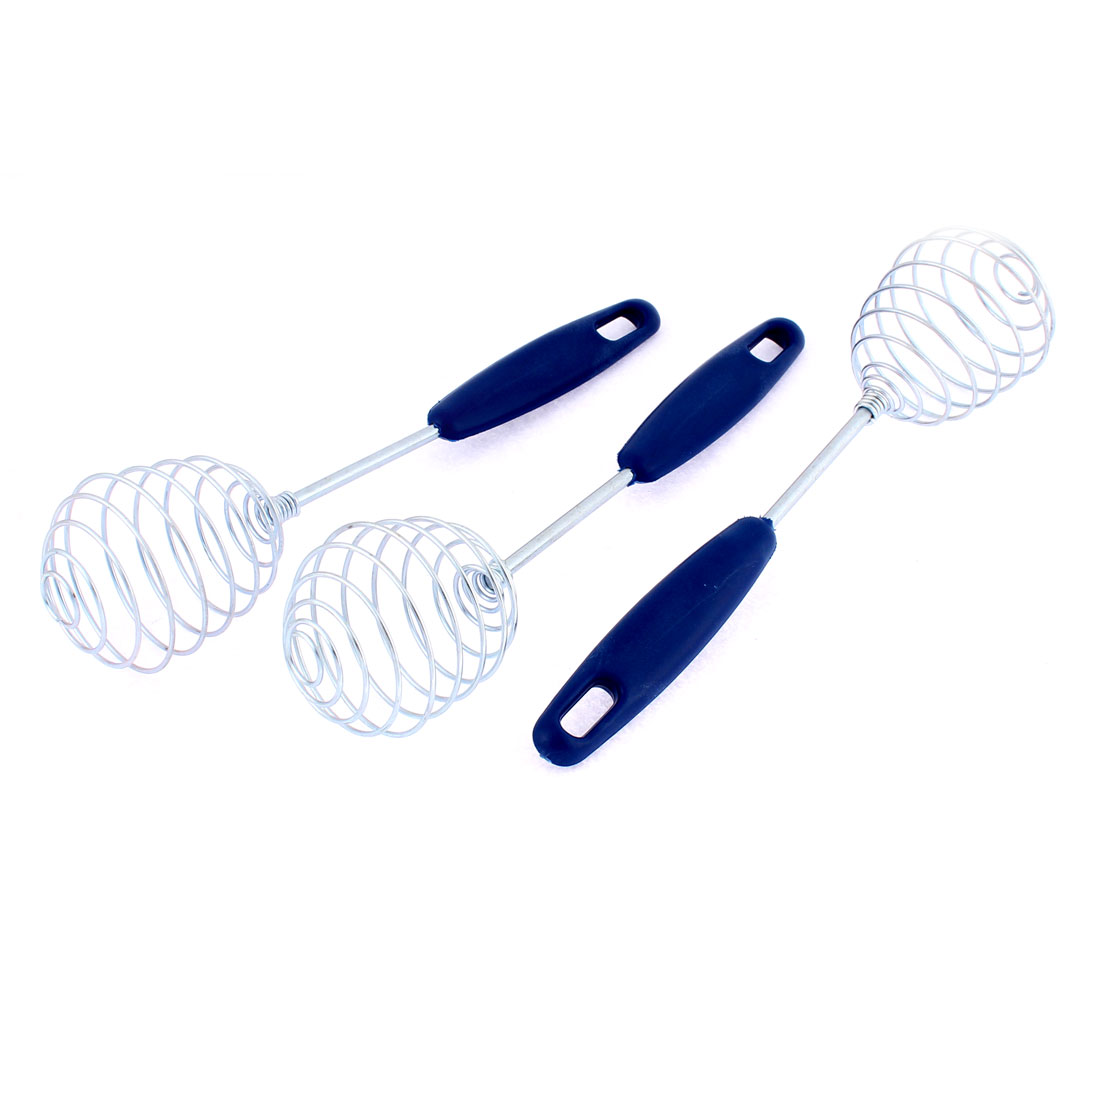 Home Stainless Steel Spiral Whisk Egg Beater 10 Inch Length Blue 3 Pcs